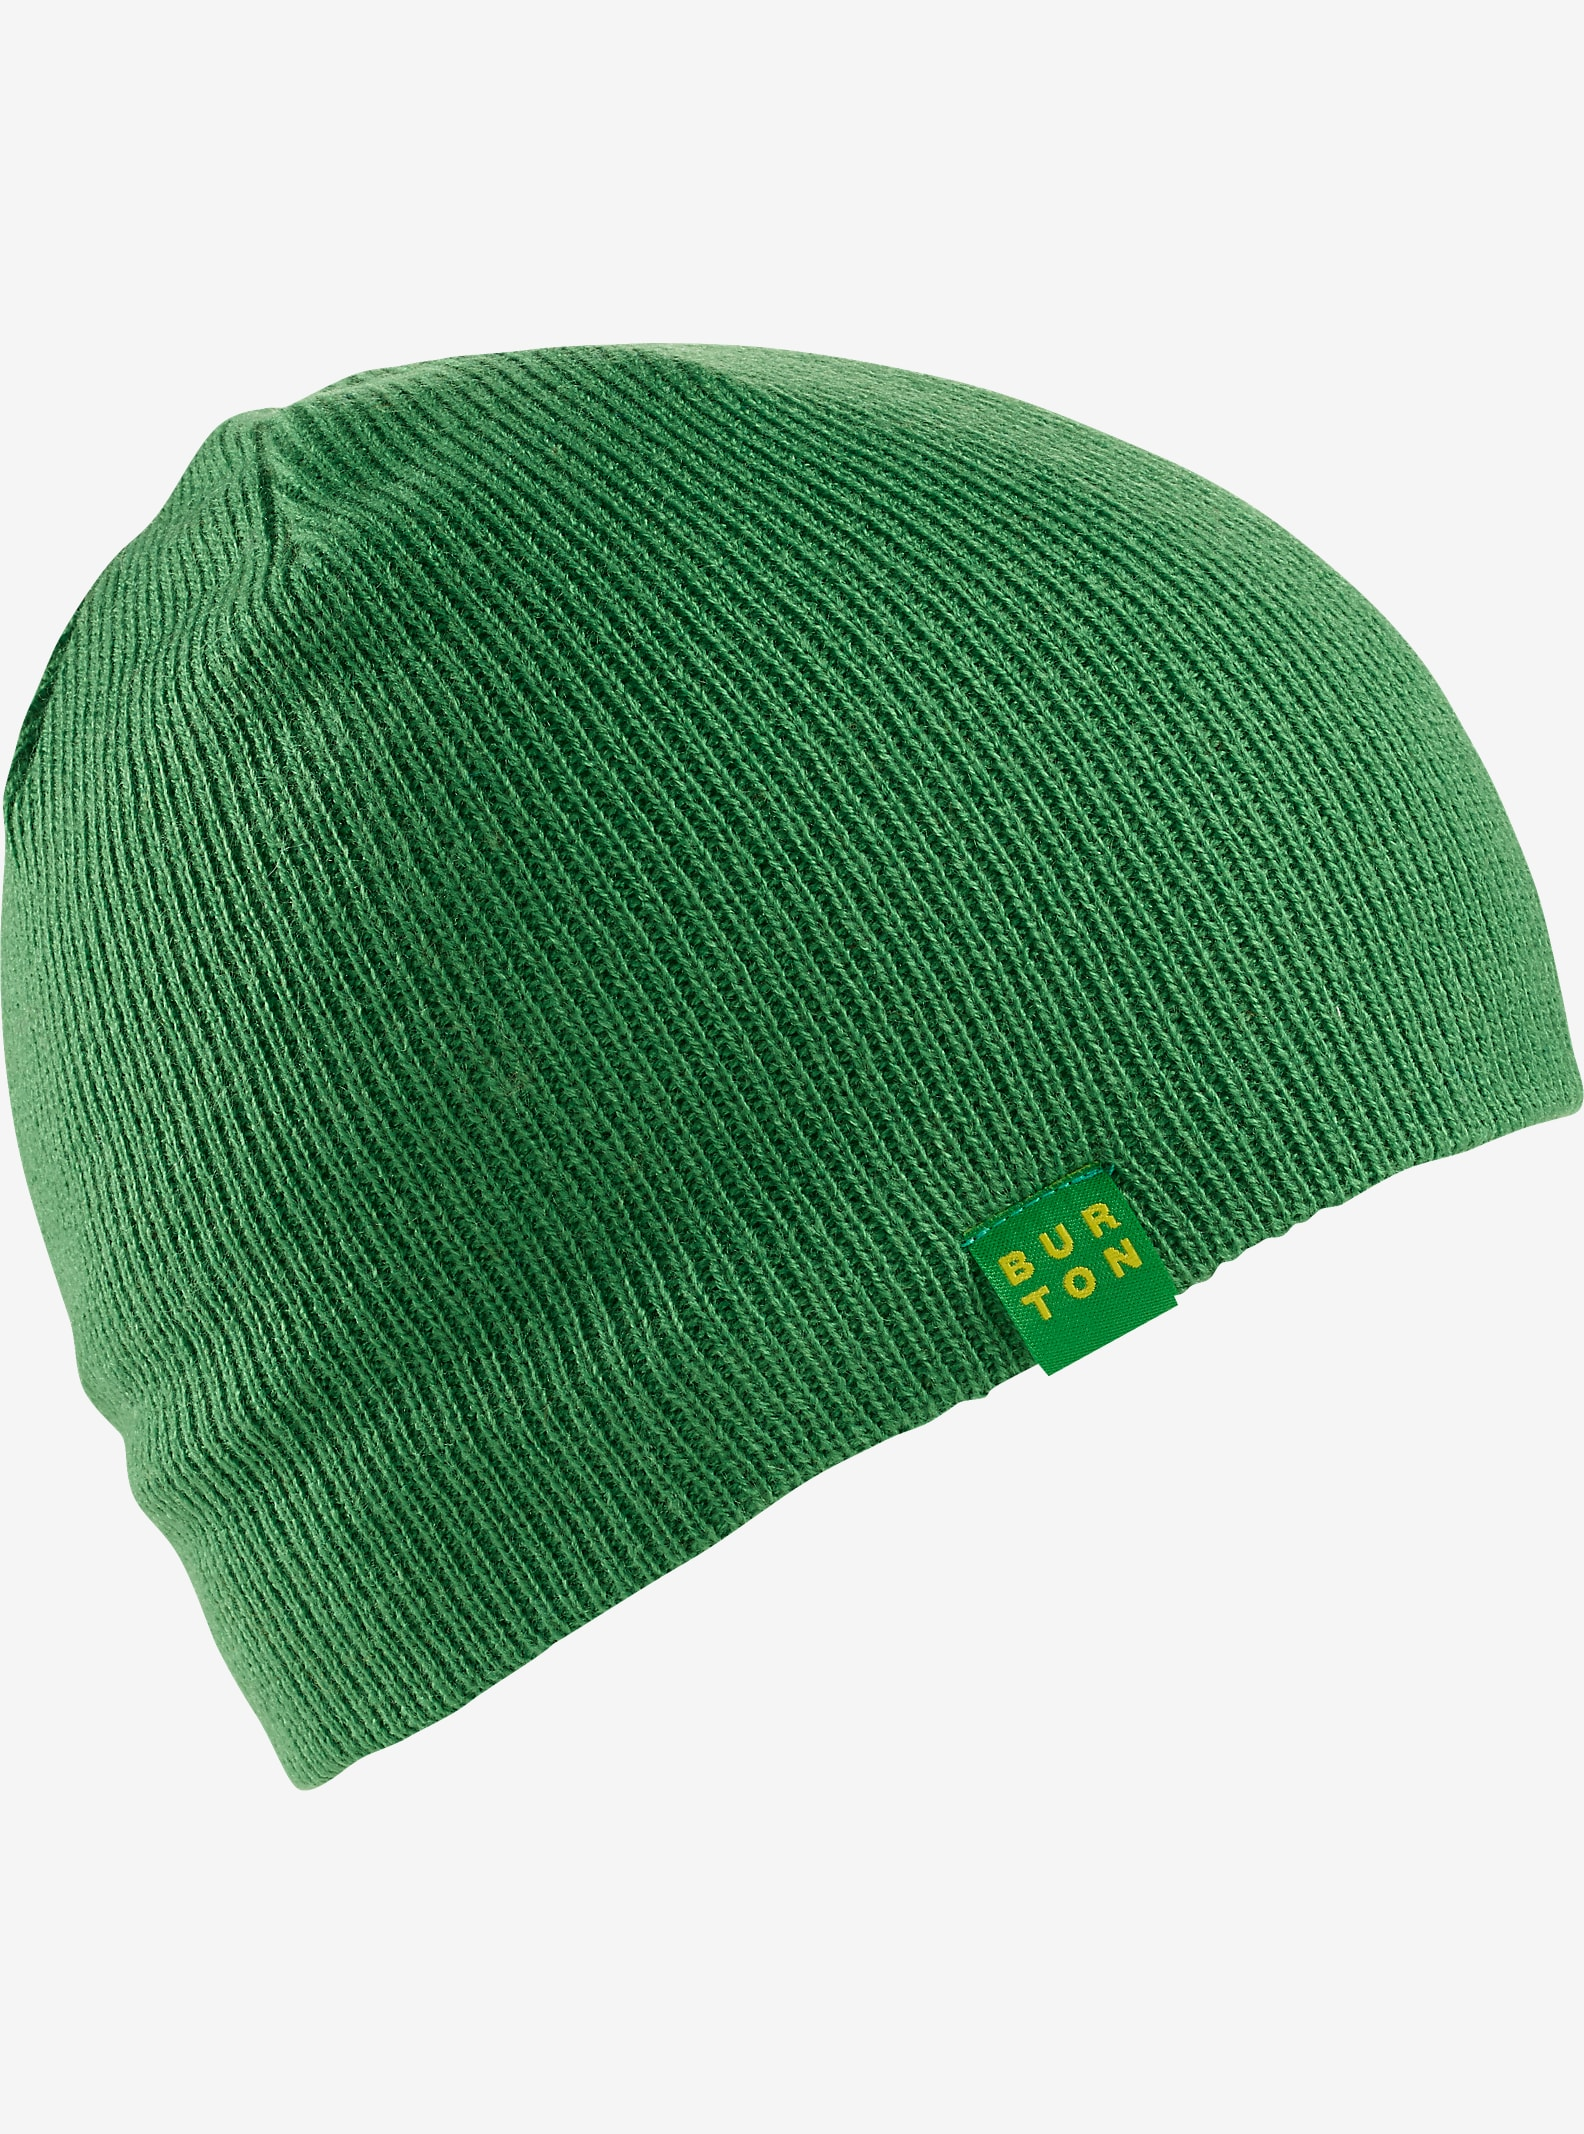 Burton - Bonnet All Day Long garçon affichage en Slime